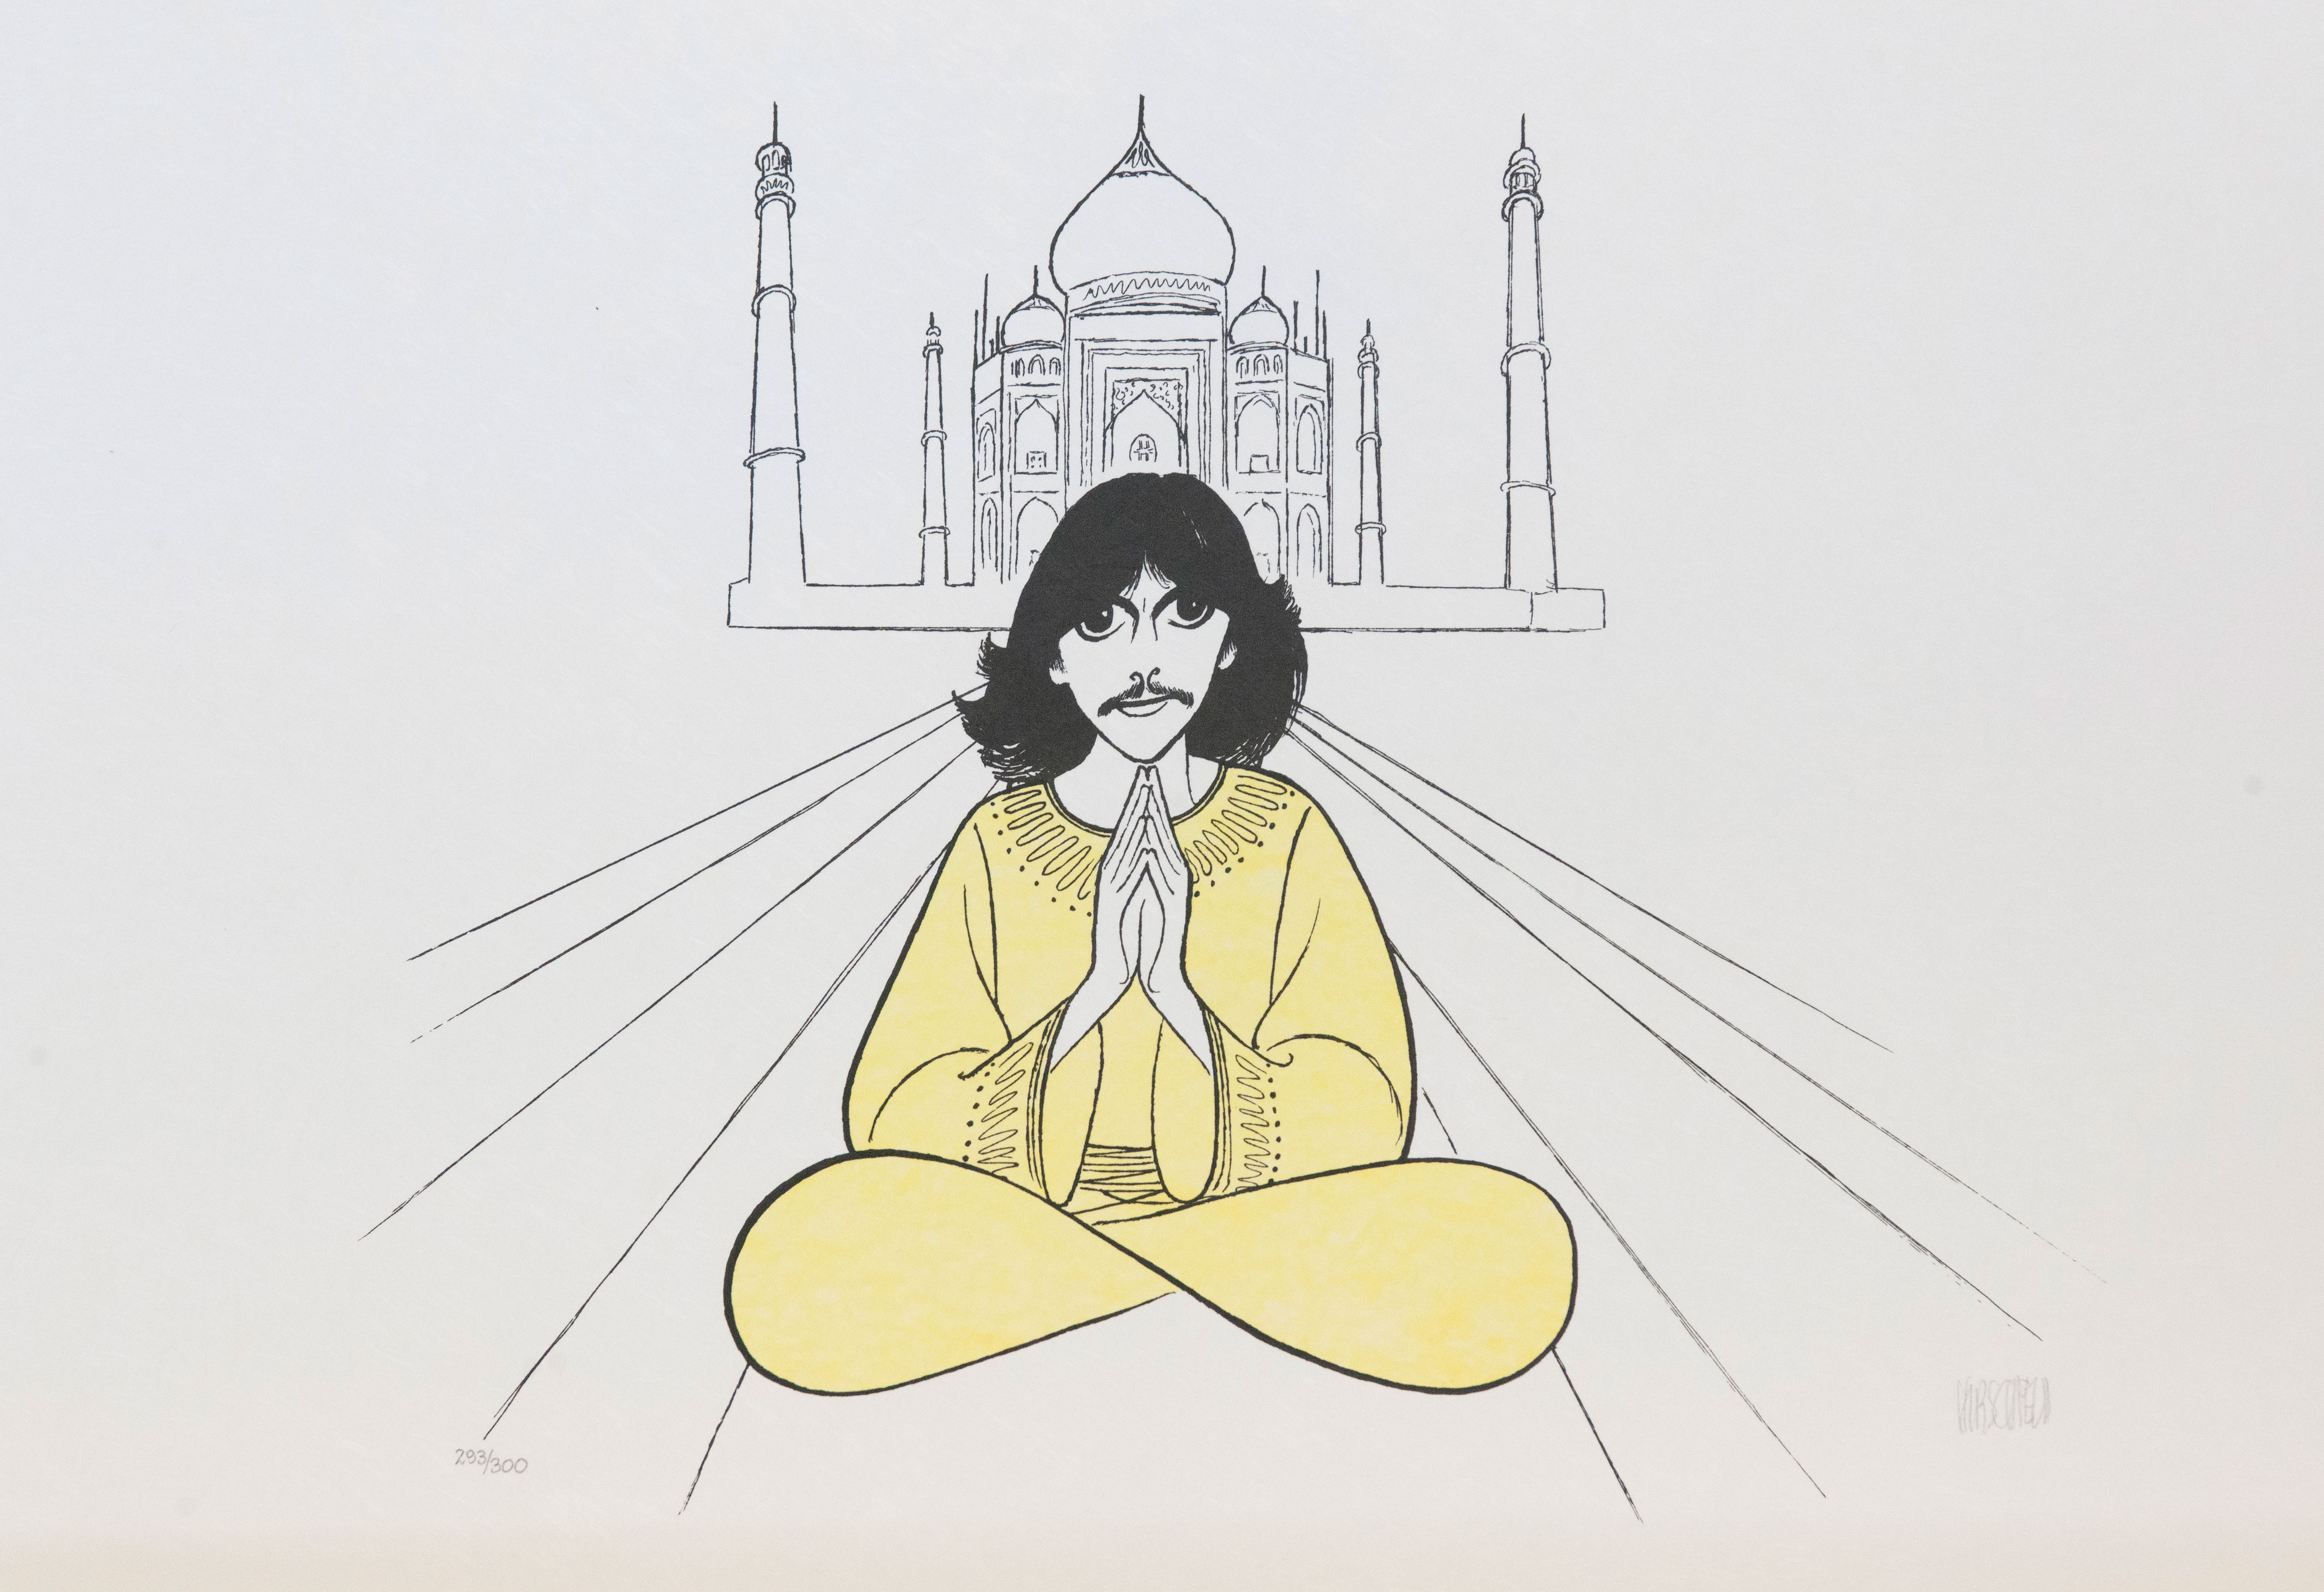 Al Hirschfeld master of line new yorker cartoon celebrity art George Harrison Taj Mahal infinity sign